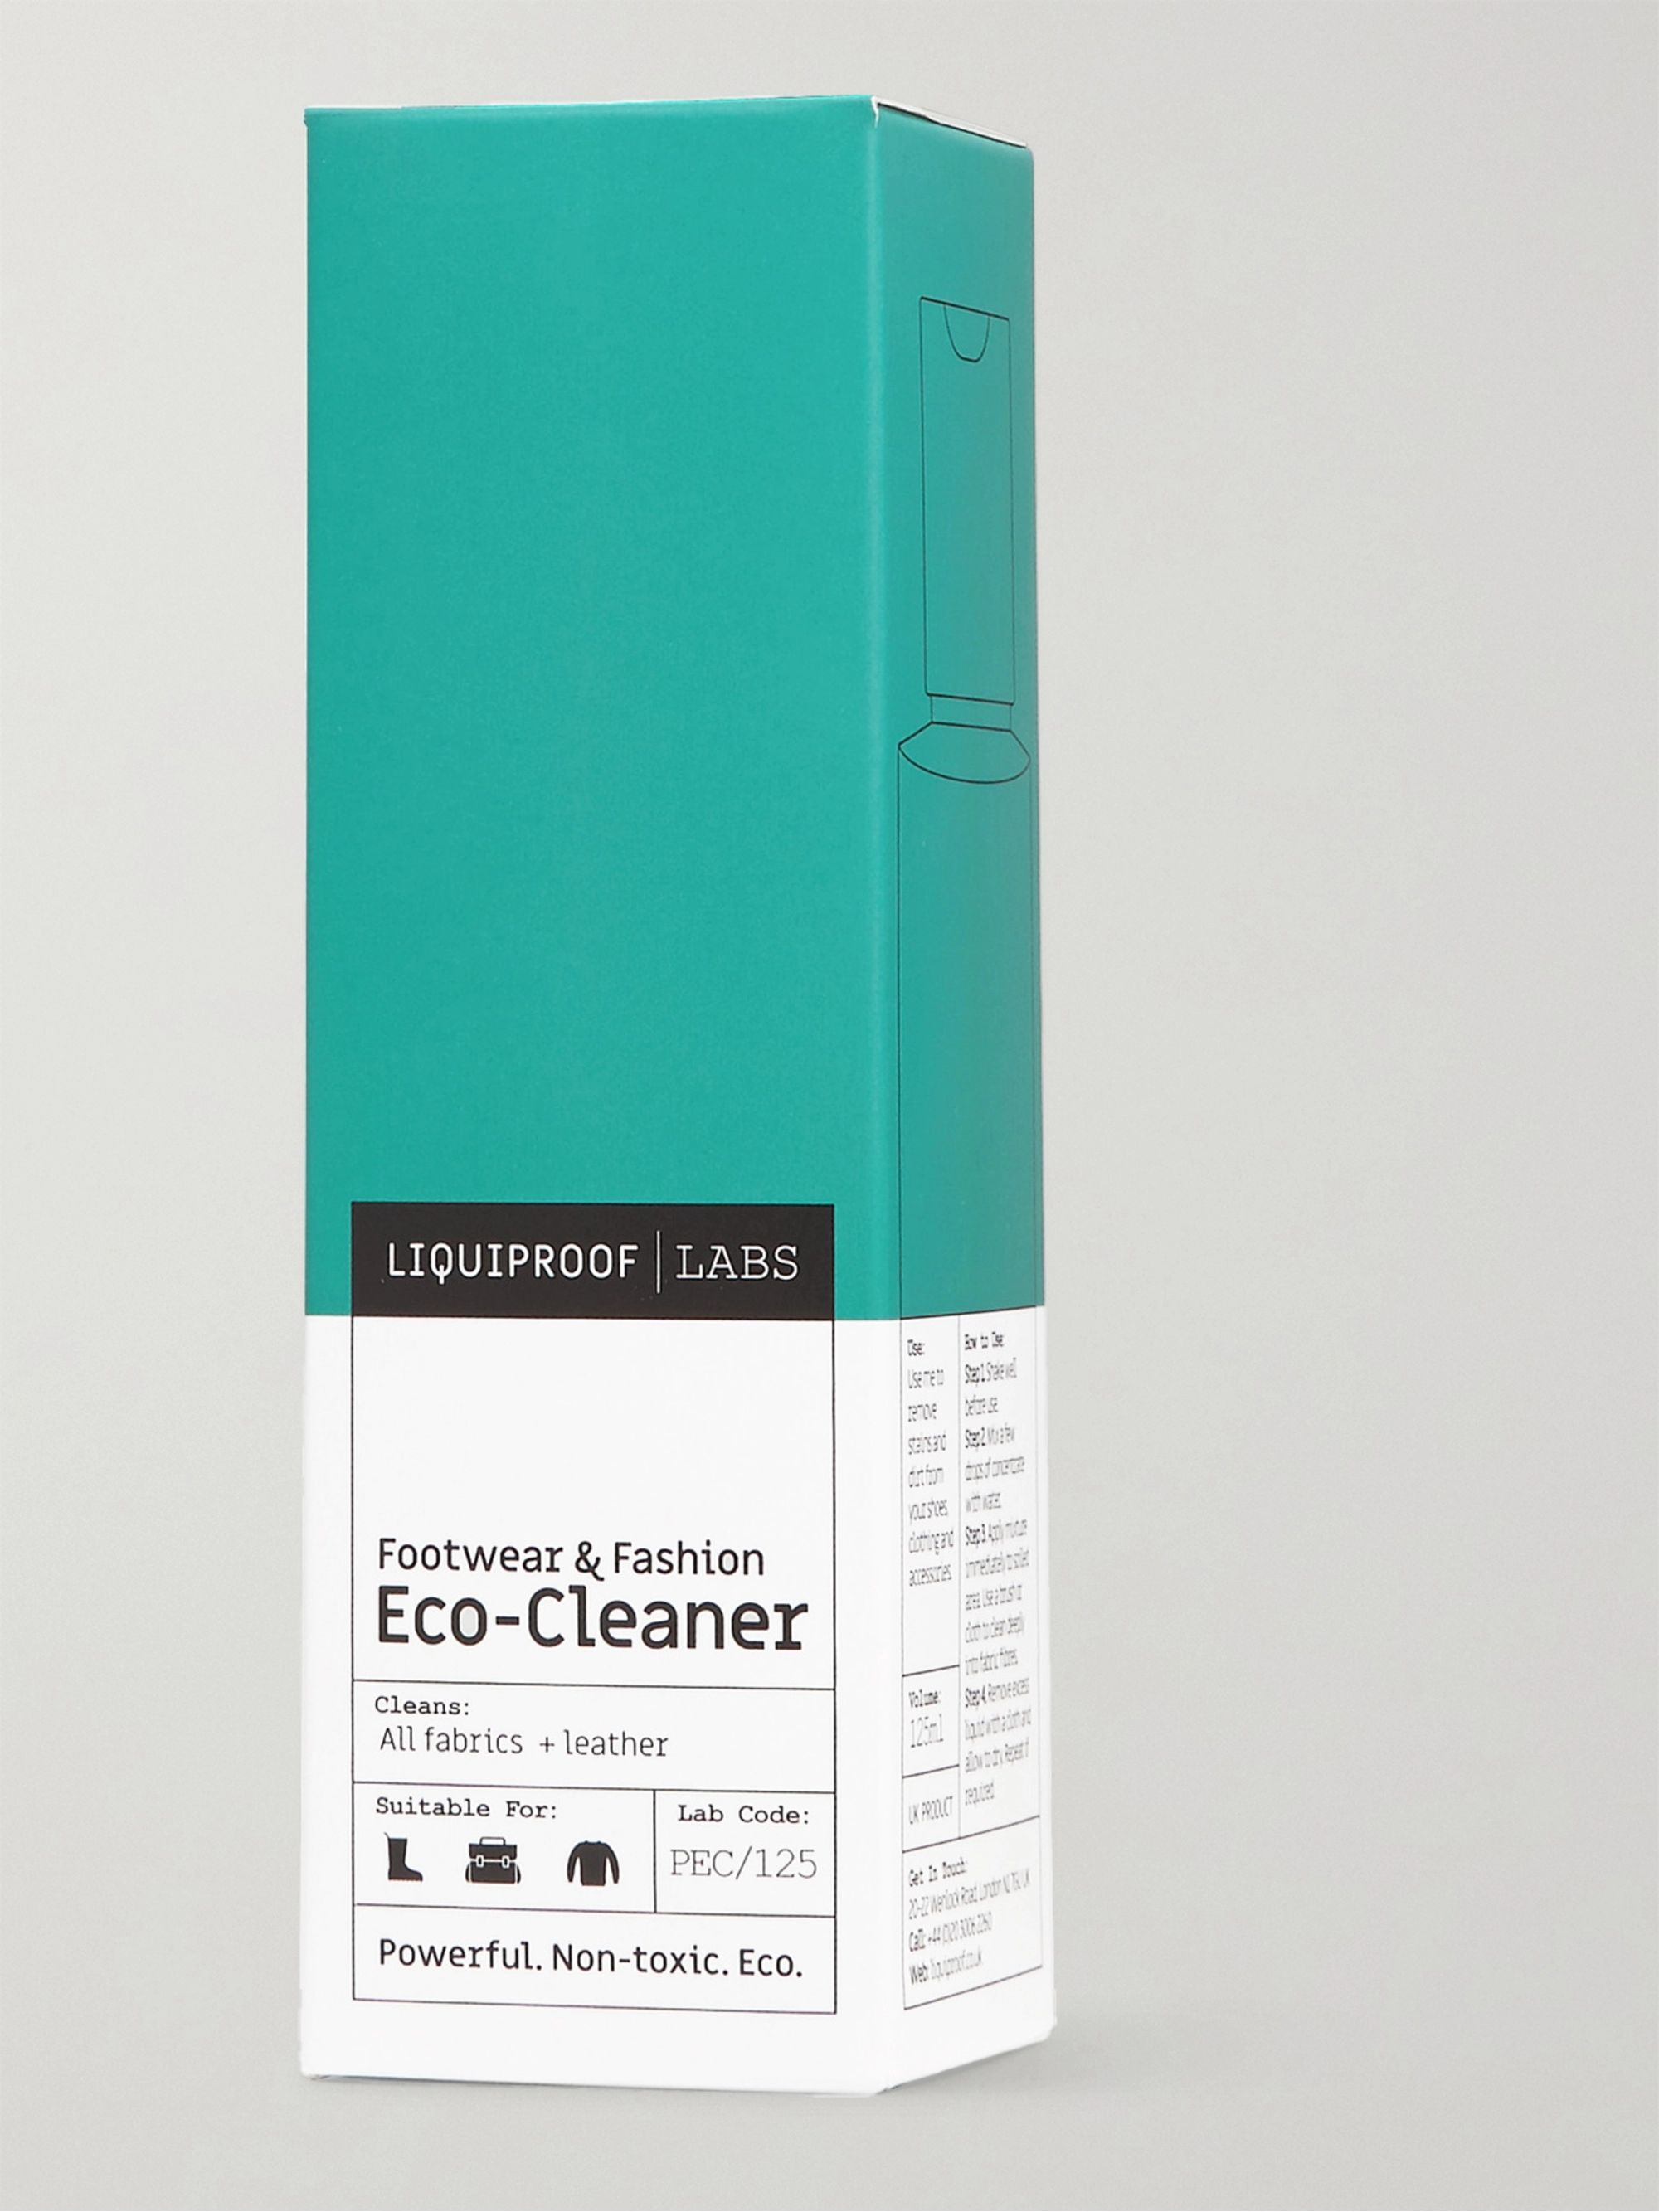 Liquiproof LABS Footwear & Fashion Eco-Cleaner, 125ml